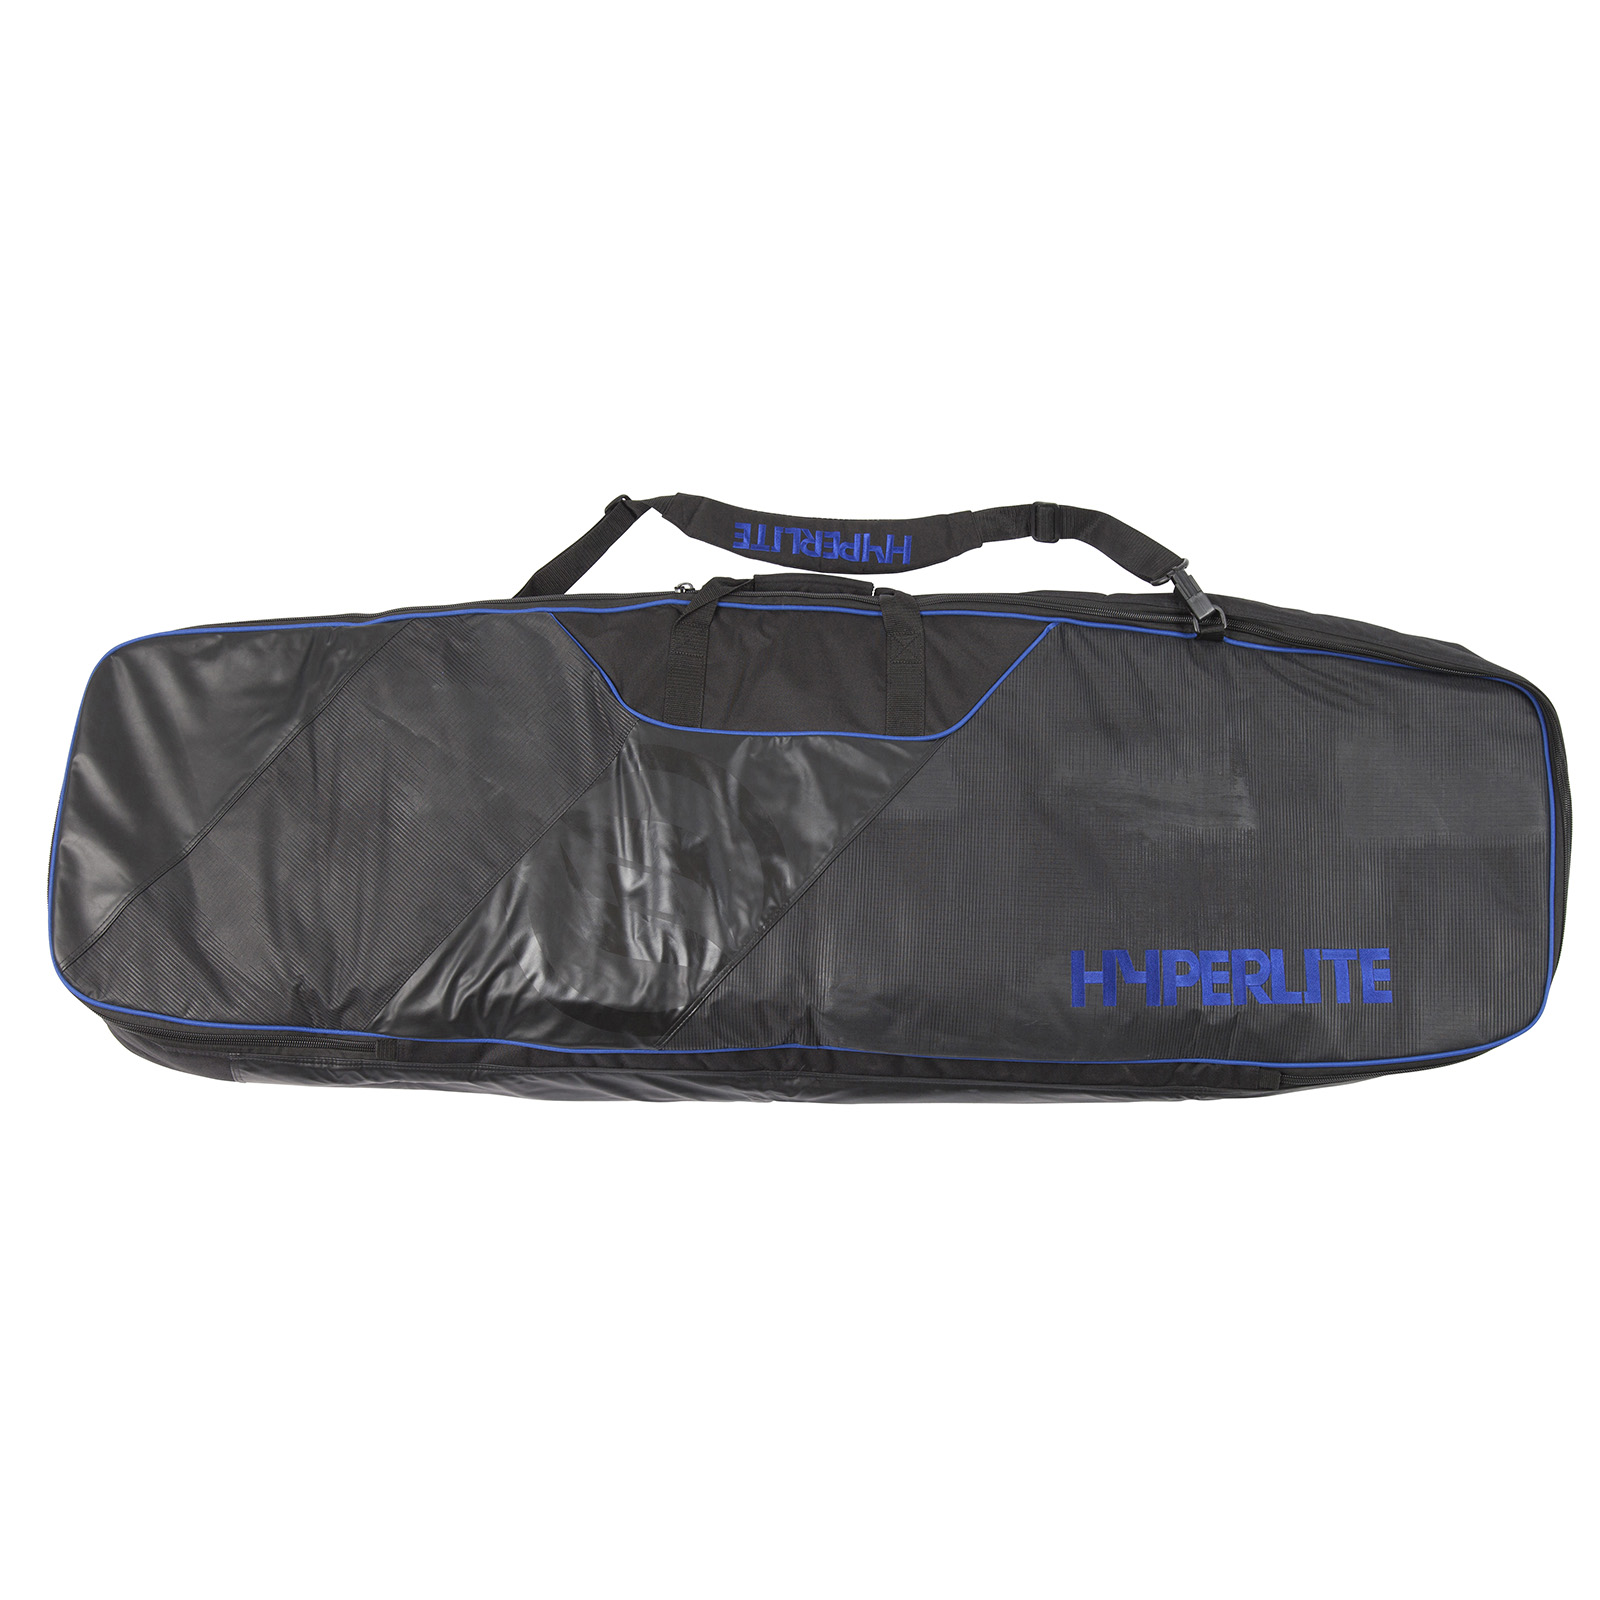 TEAM BOARD BAG HYPERLITE 2017